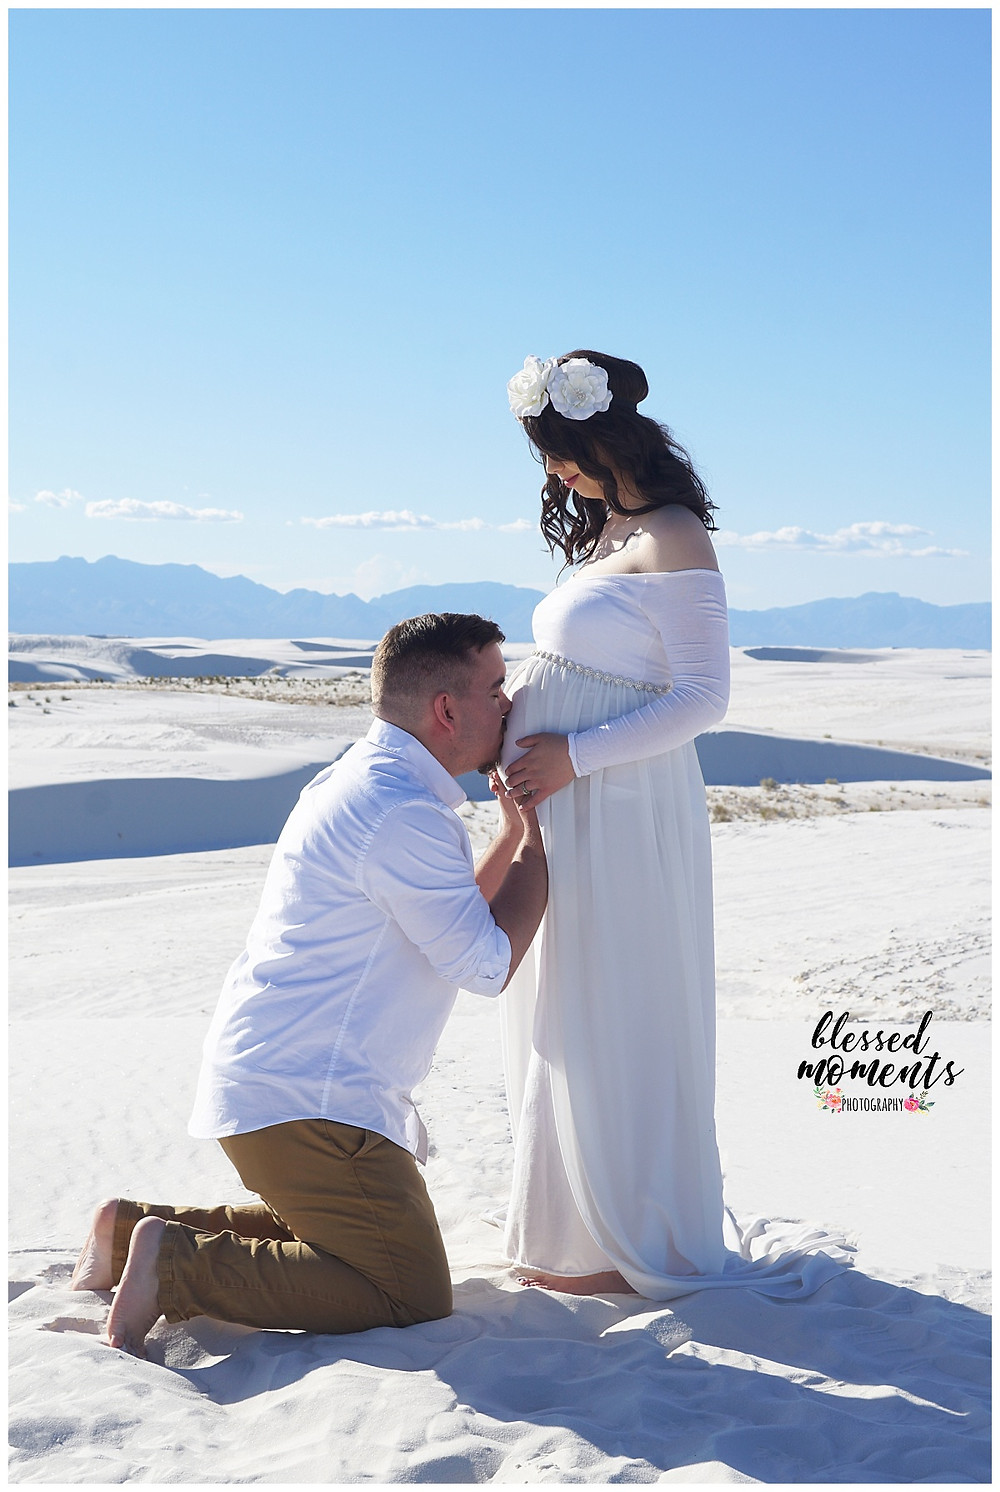 Proud papa kissing his wife's pregnant belly at White Sands